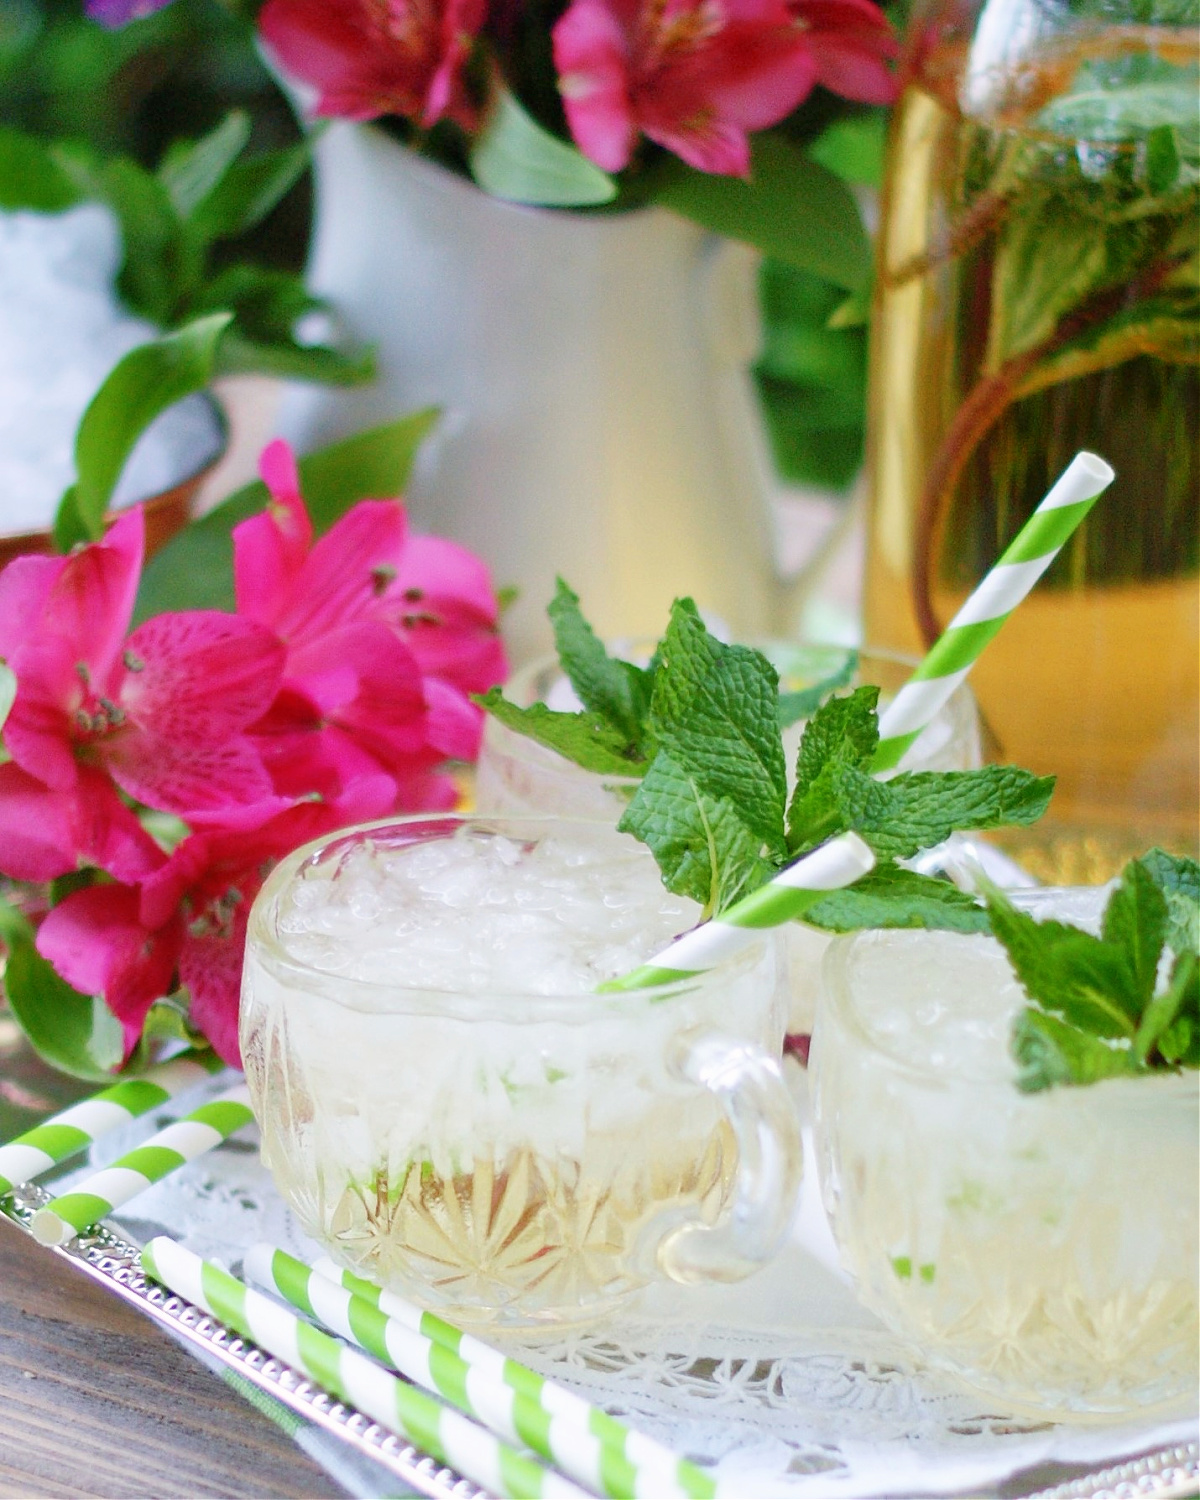 A non alcoholic variation of the champagne julep for parties.